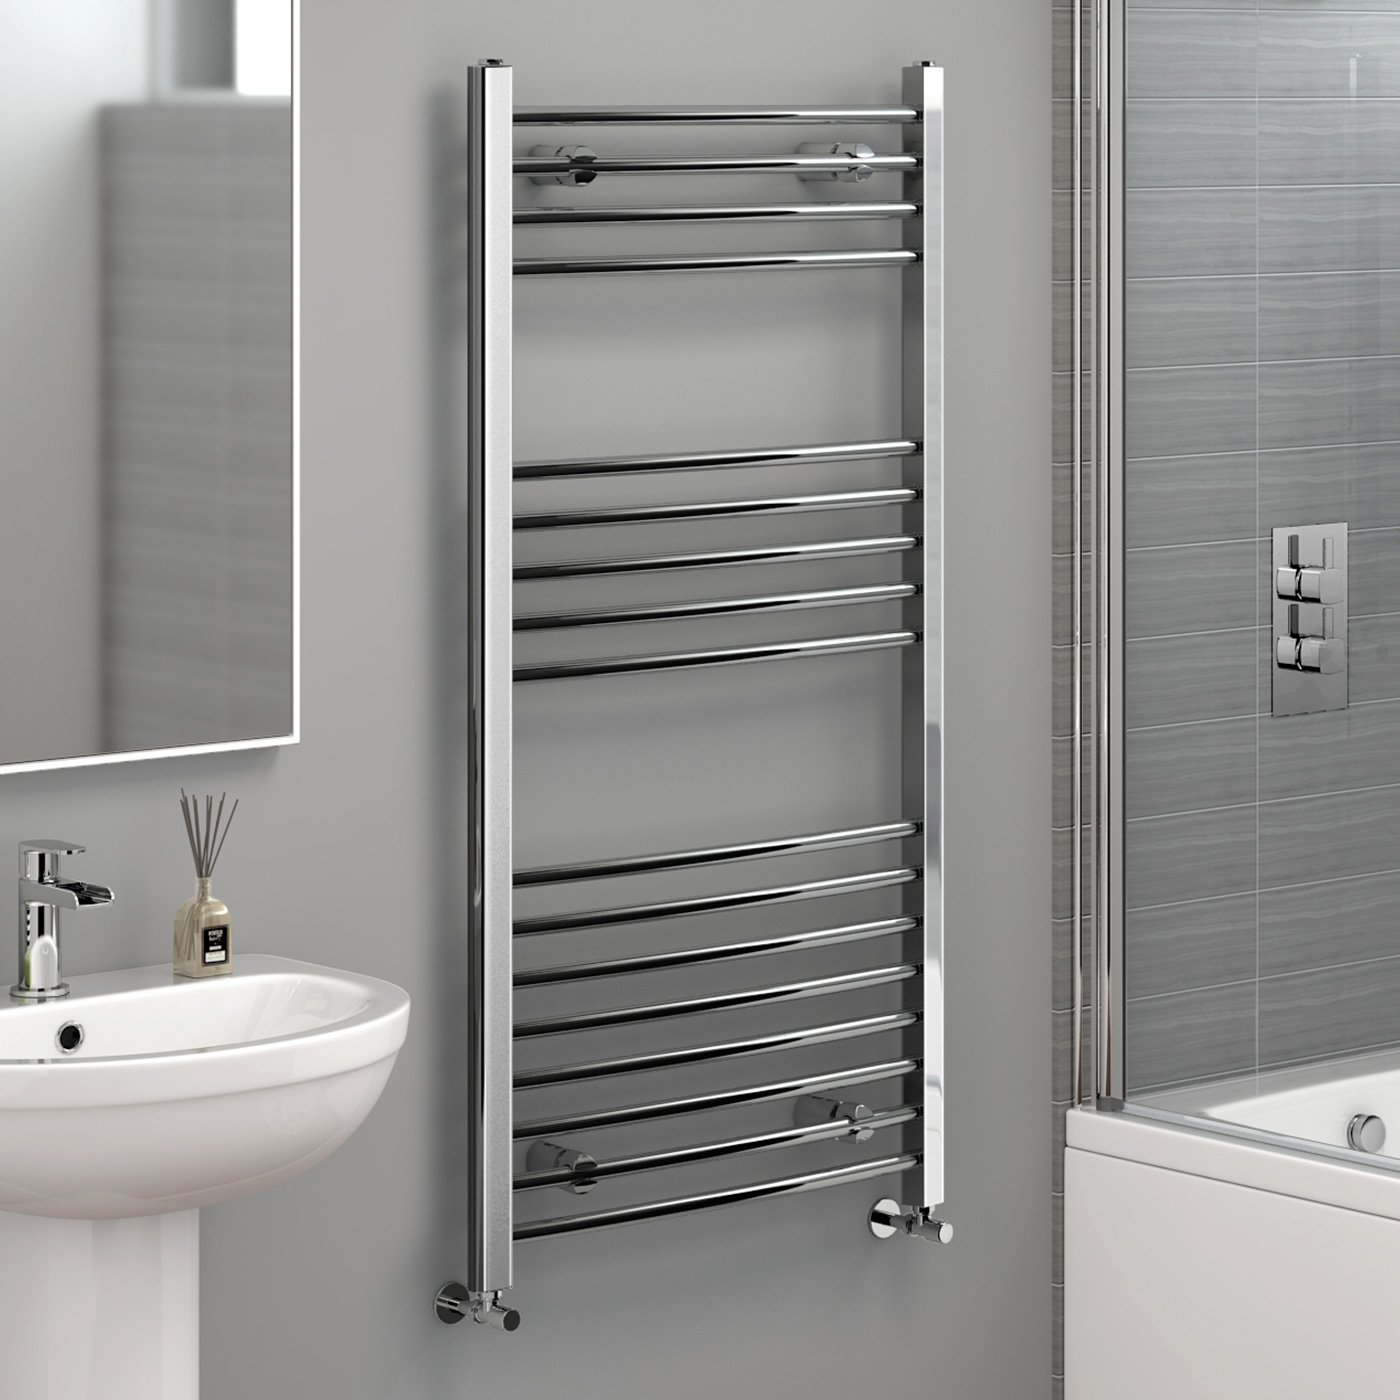 Designer heated towel rails for bathrooms - 1200 X 600mm Straight Heated Towel Rail Chrome Bathroom Radiator Ibathuk Amazon Co Uk Kitchen Home